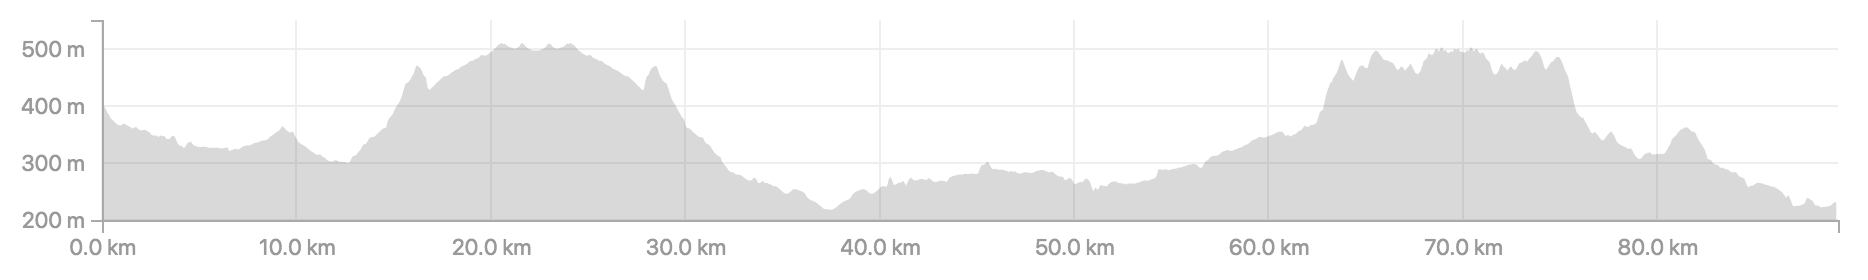 Distance 89.3km, ascent 1,247m